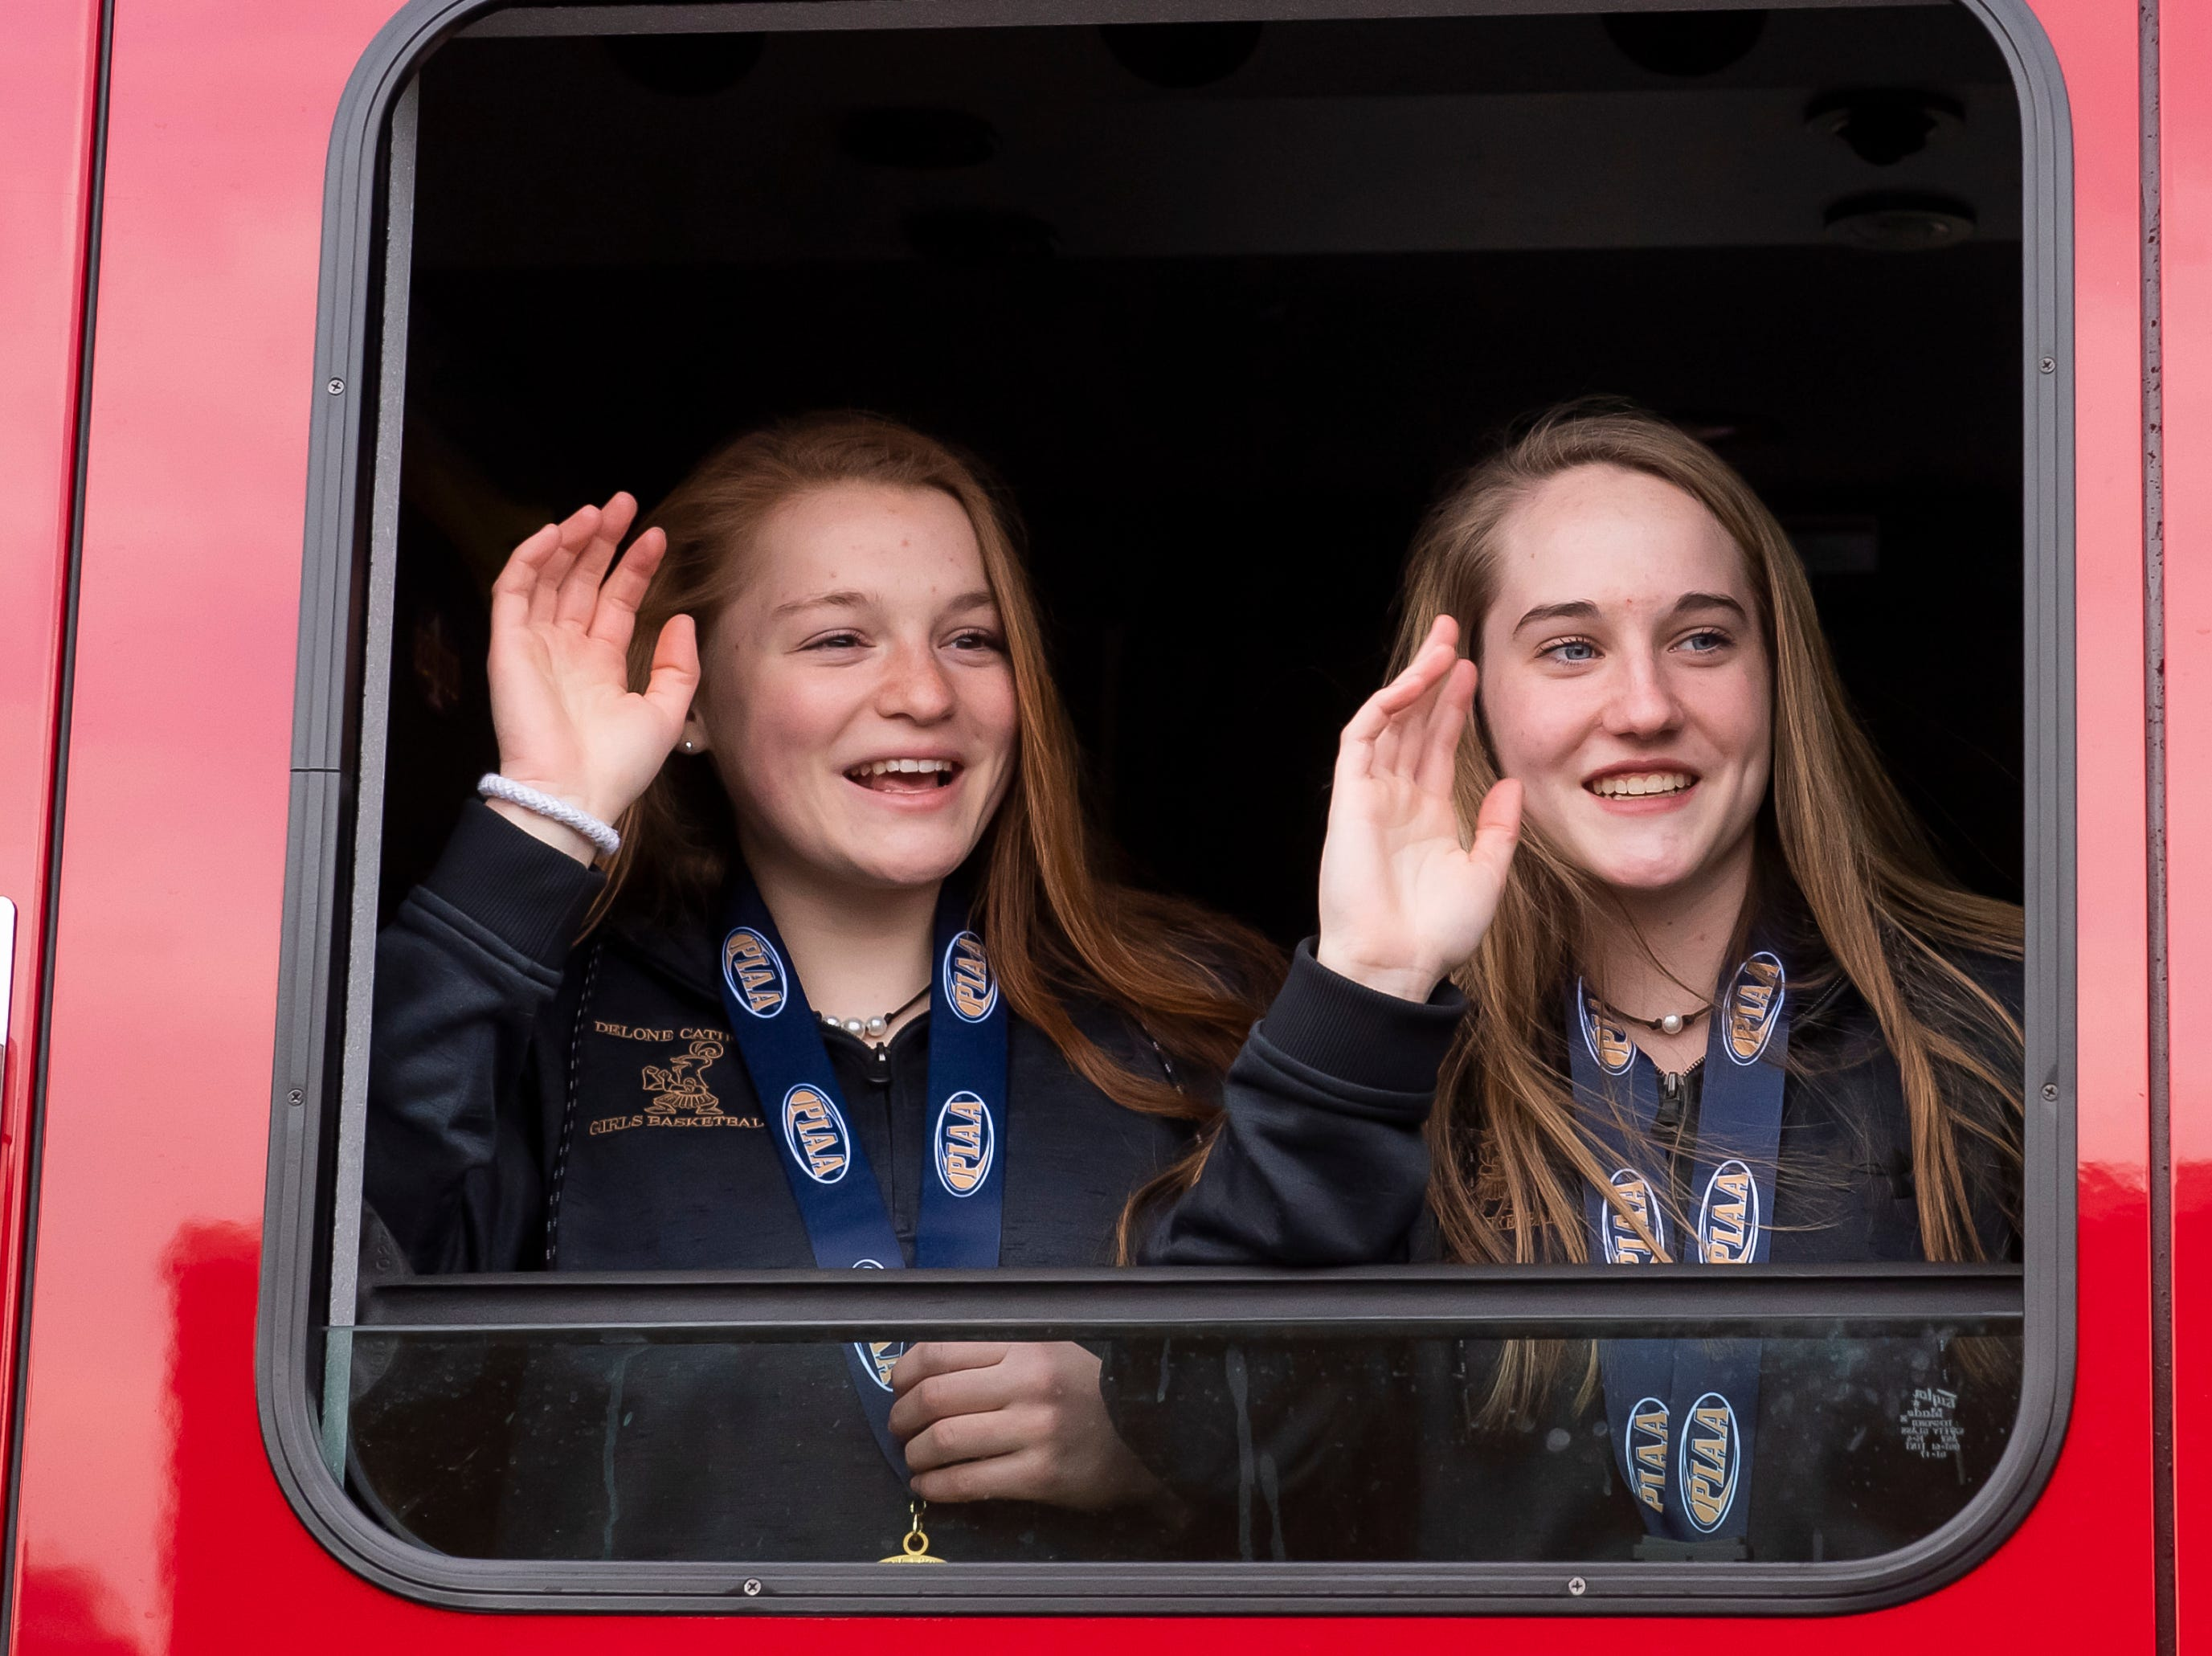 Members of the Delone Catholic girls basketball team wave to the crowd from inside a firetruck during a parade celebrating their PIAA championship on Thursday, March 28, 2019.